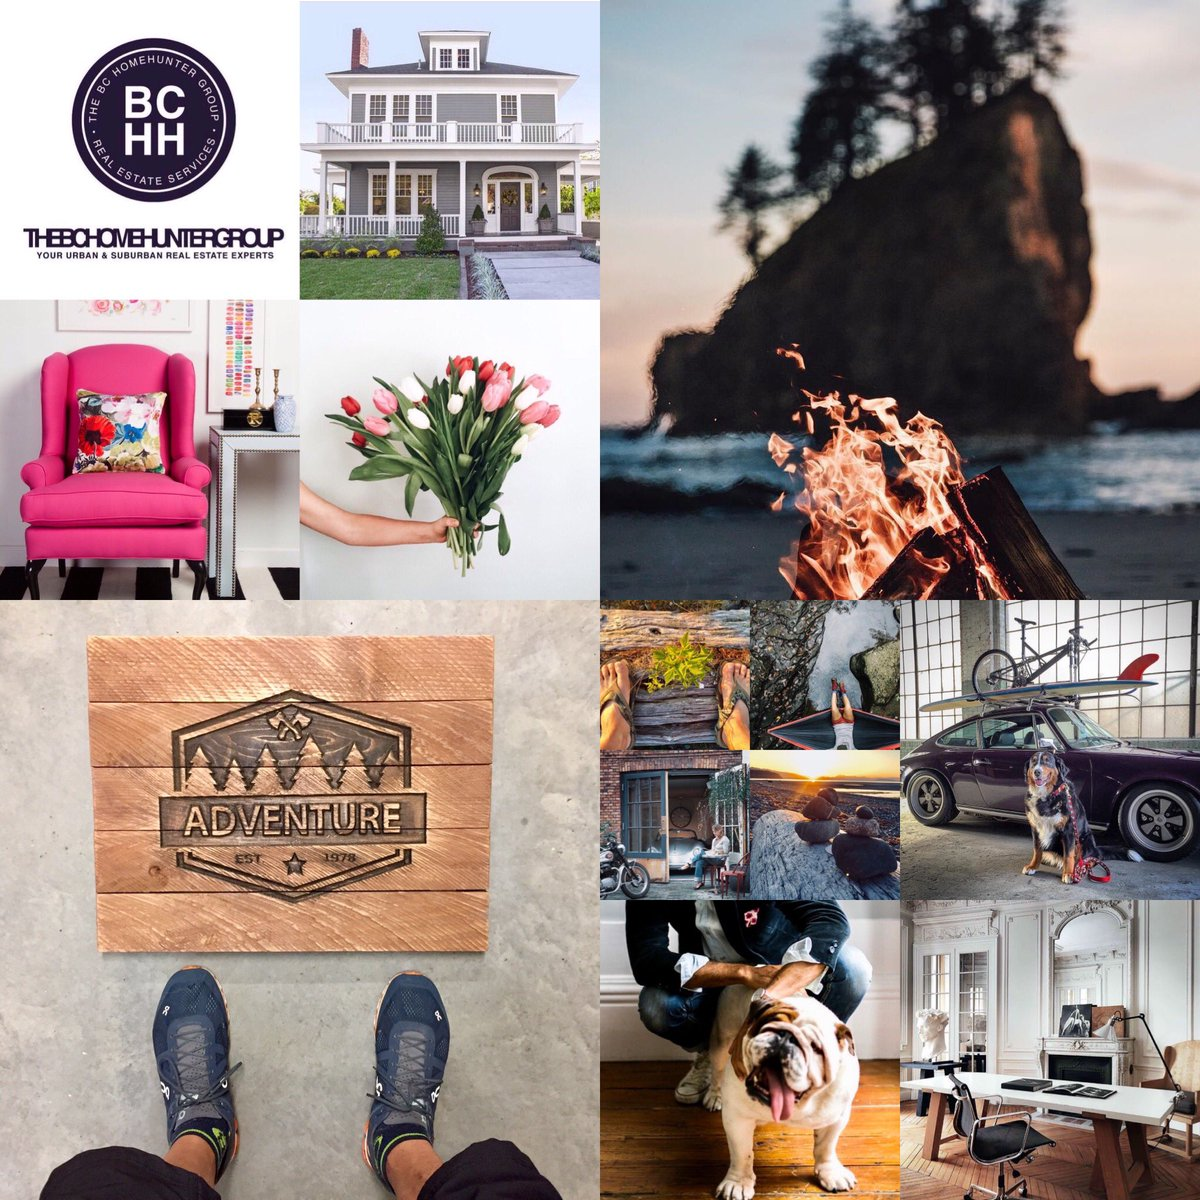 THE #BC HOME HUNTER GROUP Big thank you to Gwen & Randy for your thoughtful #DeepCove, #NorthVancouver home referral, $1000! #WestVan #NorthShore #SeatoSky #Vancouver #WhiteRock #FraserValley #VancouverIsland #Okanagan #BCHomeHunter #WeLoveBC #Canada #WestCoast #RealEstate https://t.co/3witTHOoPh